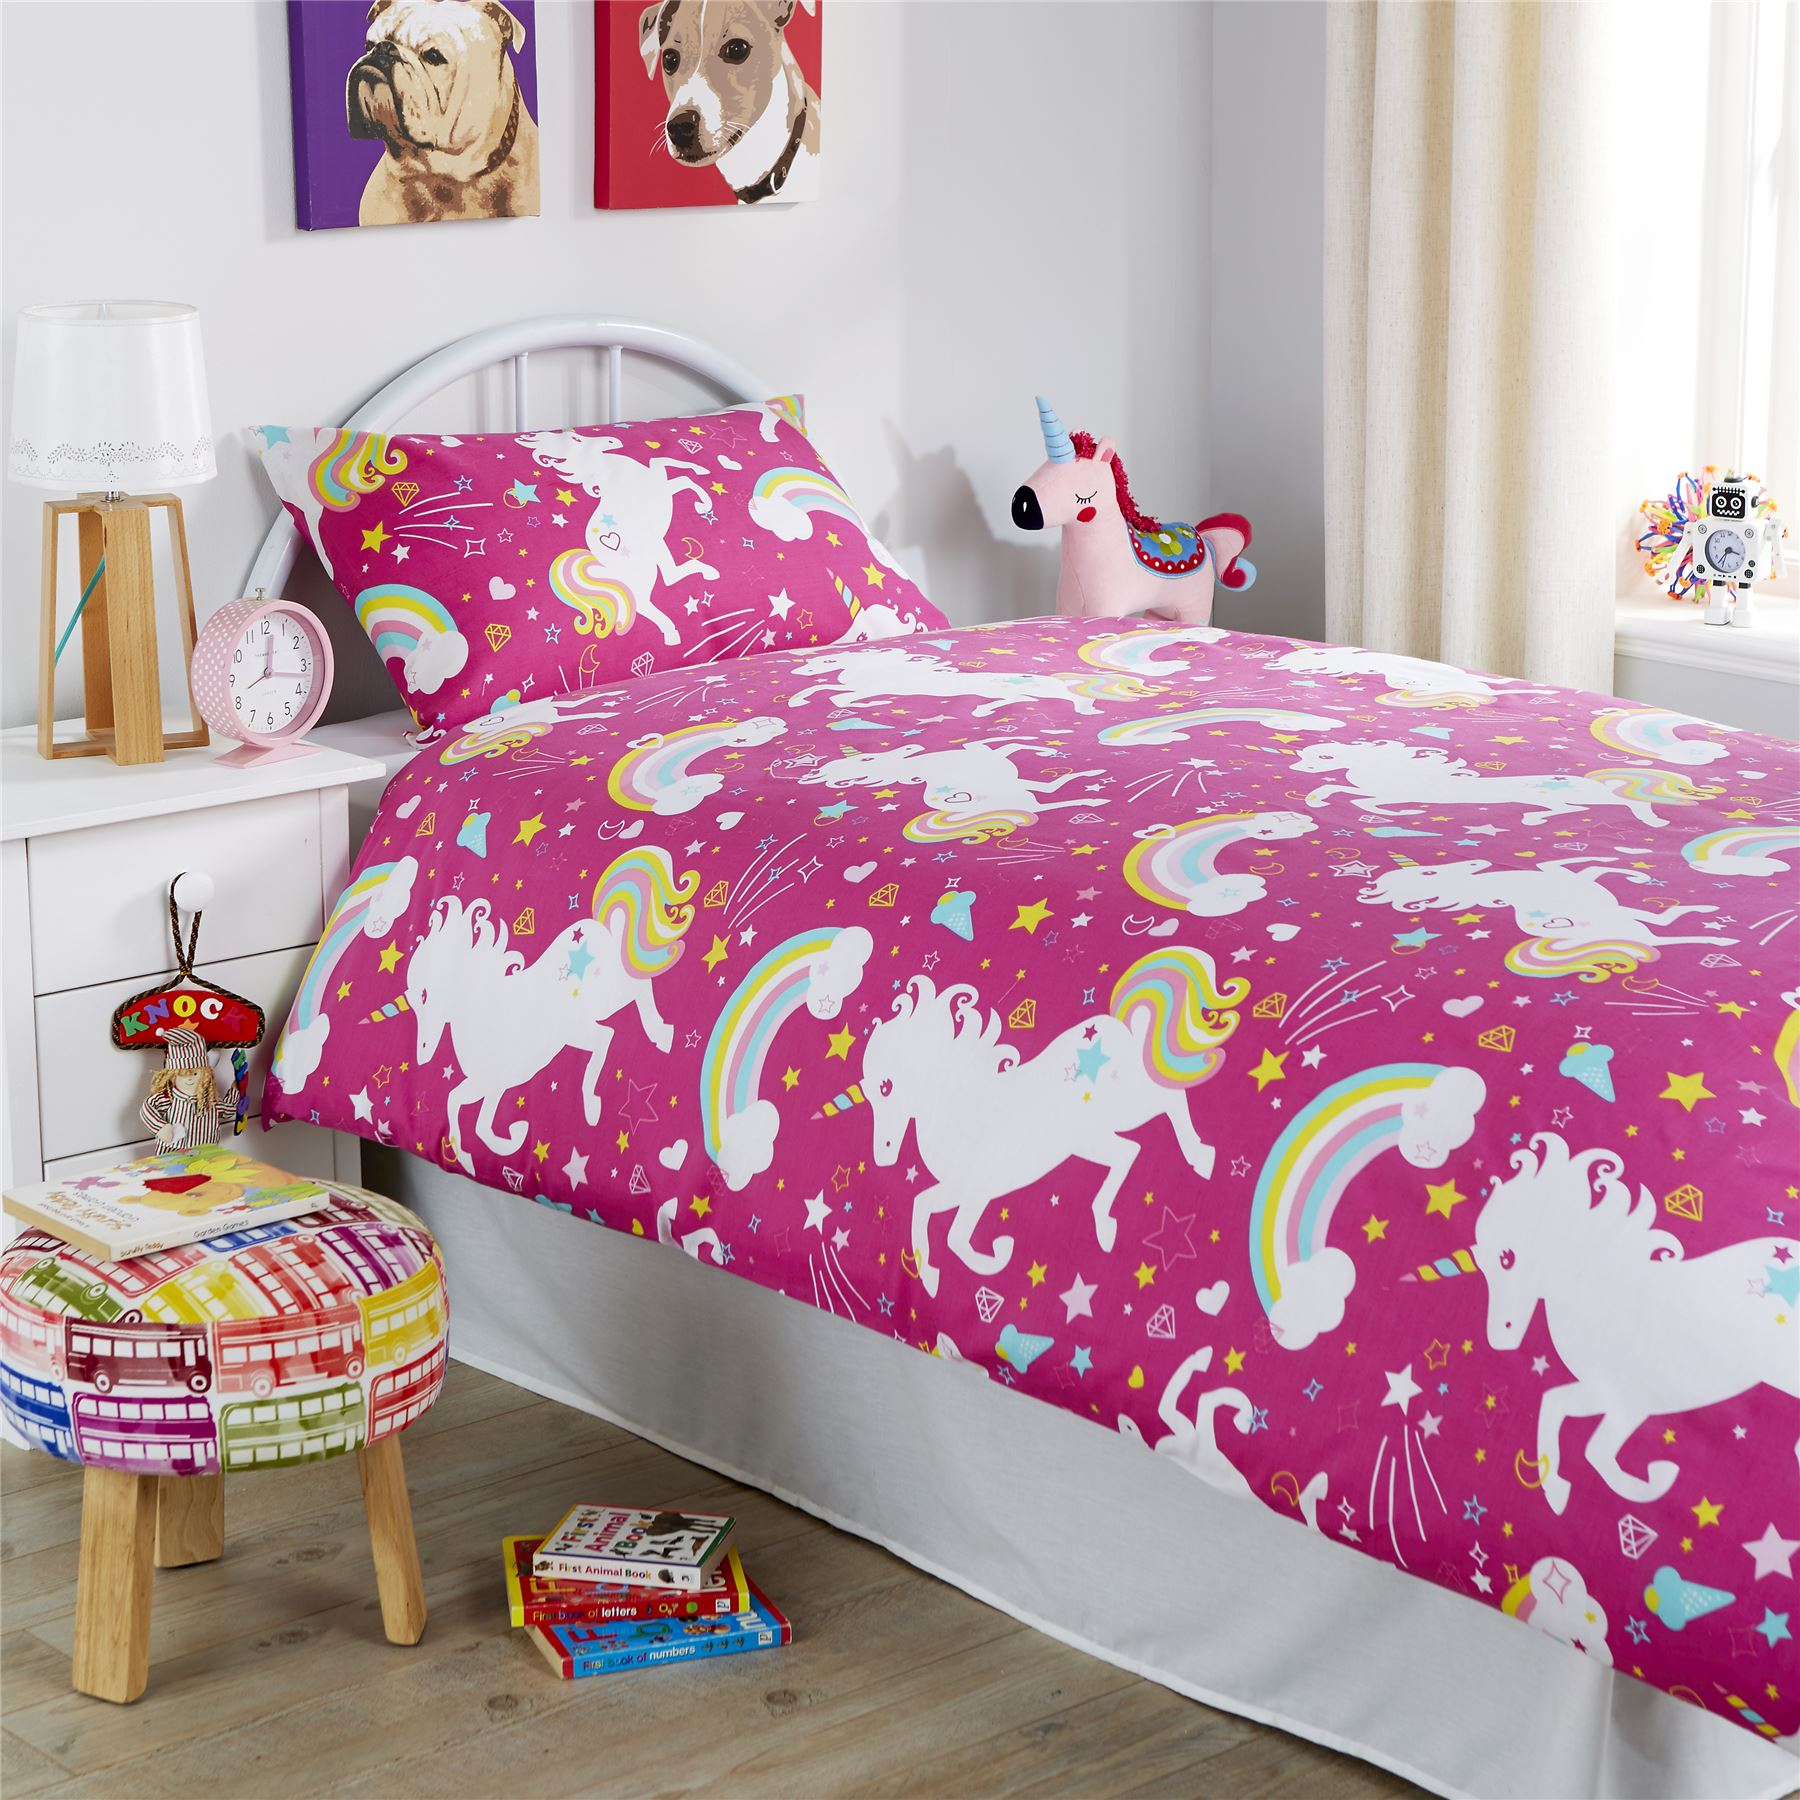 Double Doona Covers Unicorn Duvet Cover Set Girls Quilt Cover Unicorn Bedding